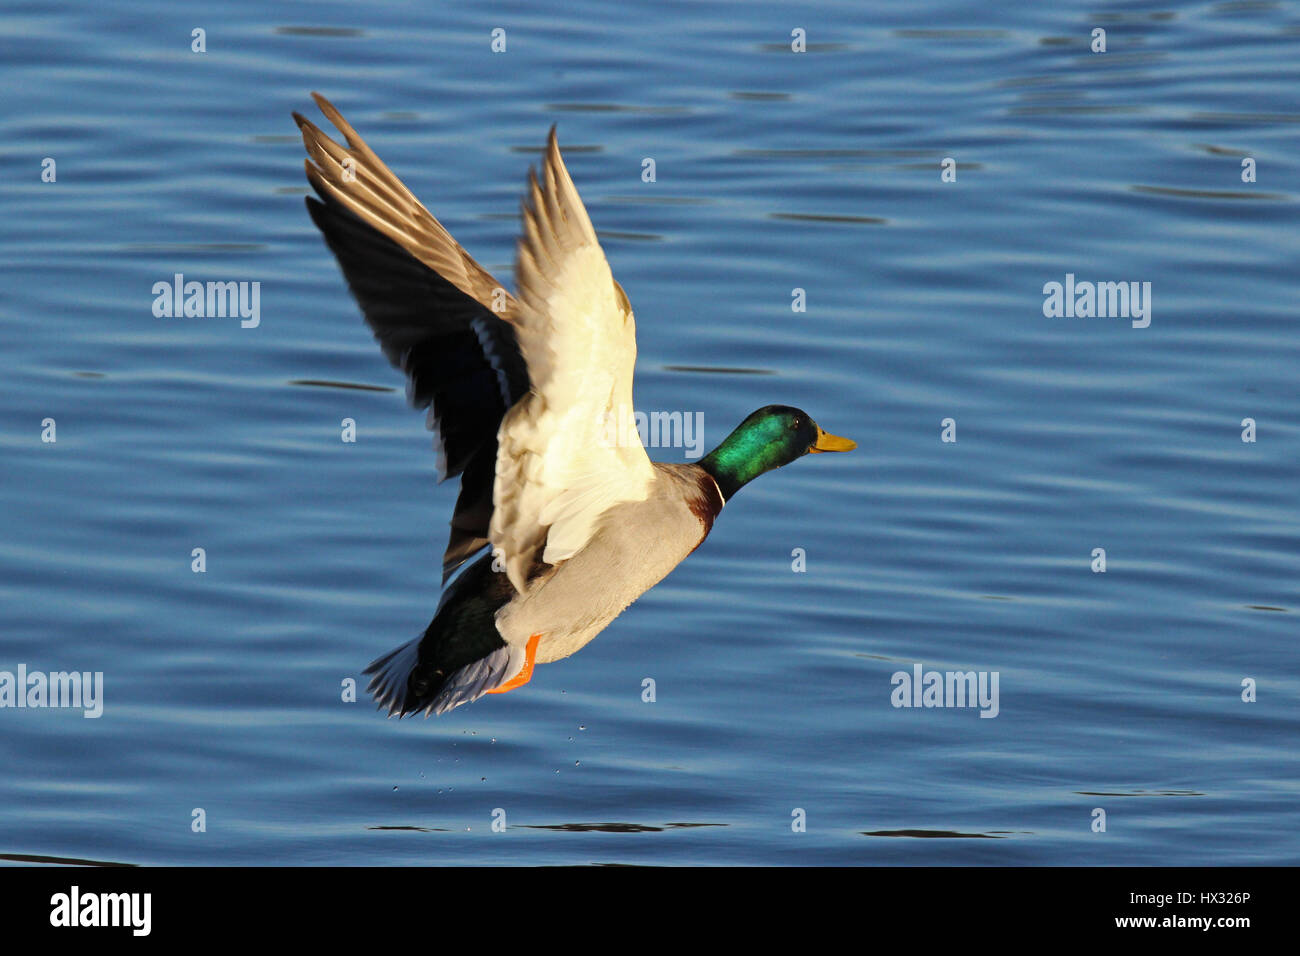 A male mallard duck flying up from a lake - Stock Image